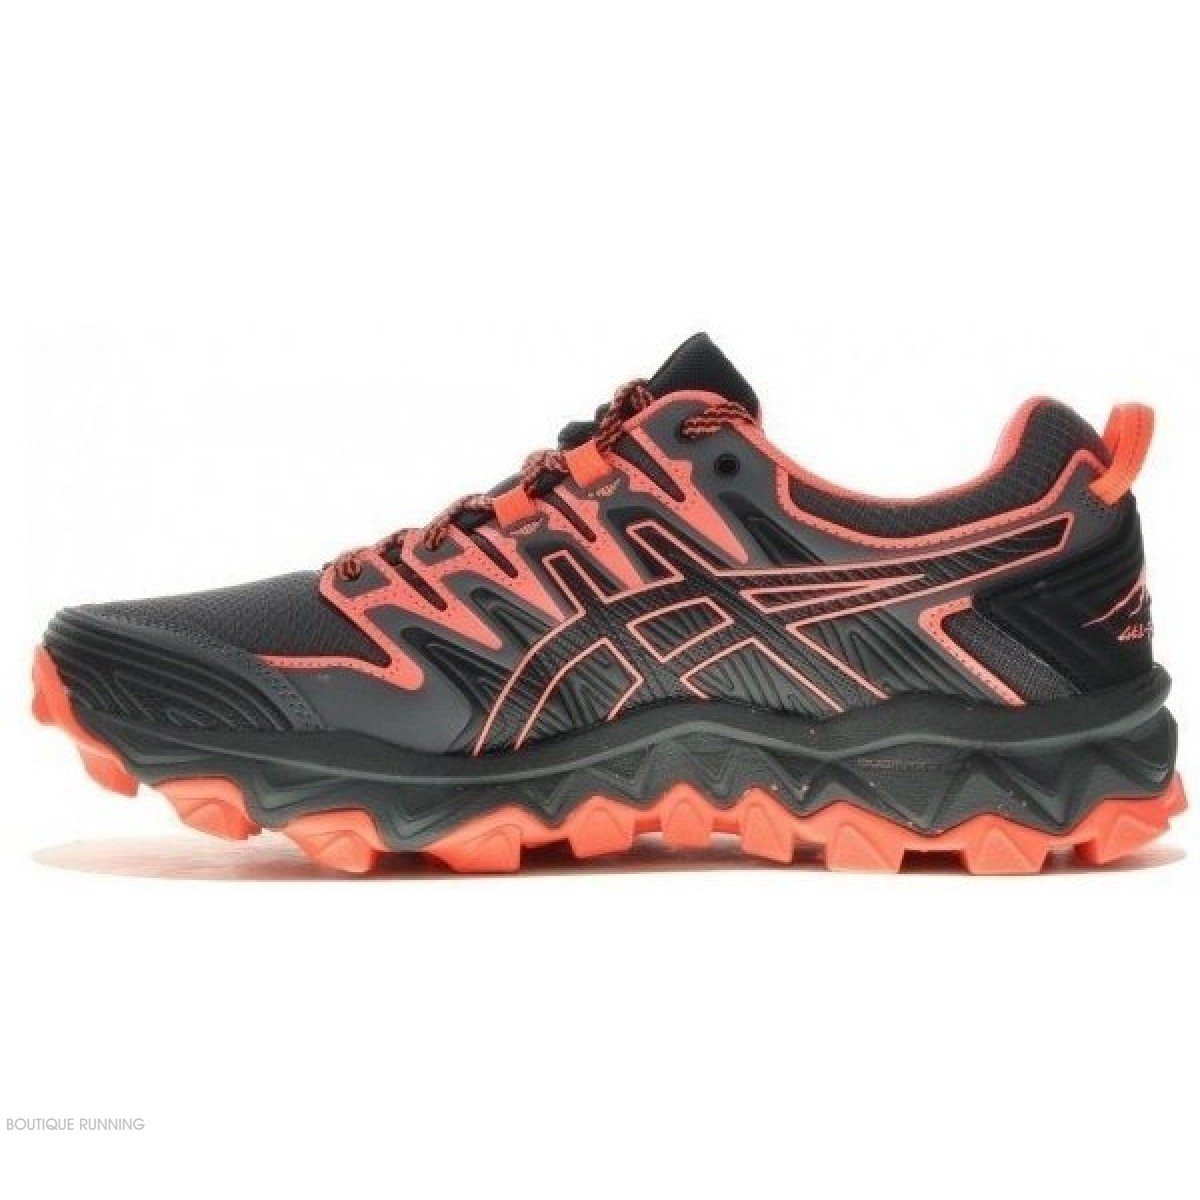 best sneakers eabfd 069a4 chaussure de trail running asics gel fuji trabuco 7 1012a180-001 black   flash  coral